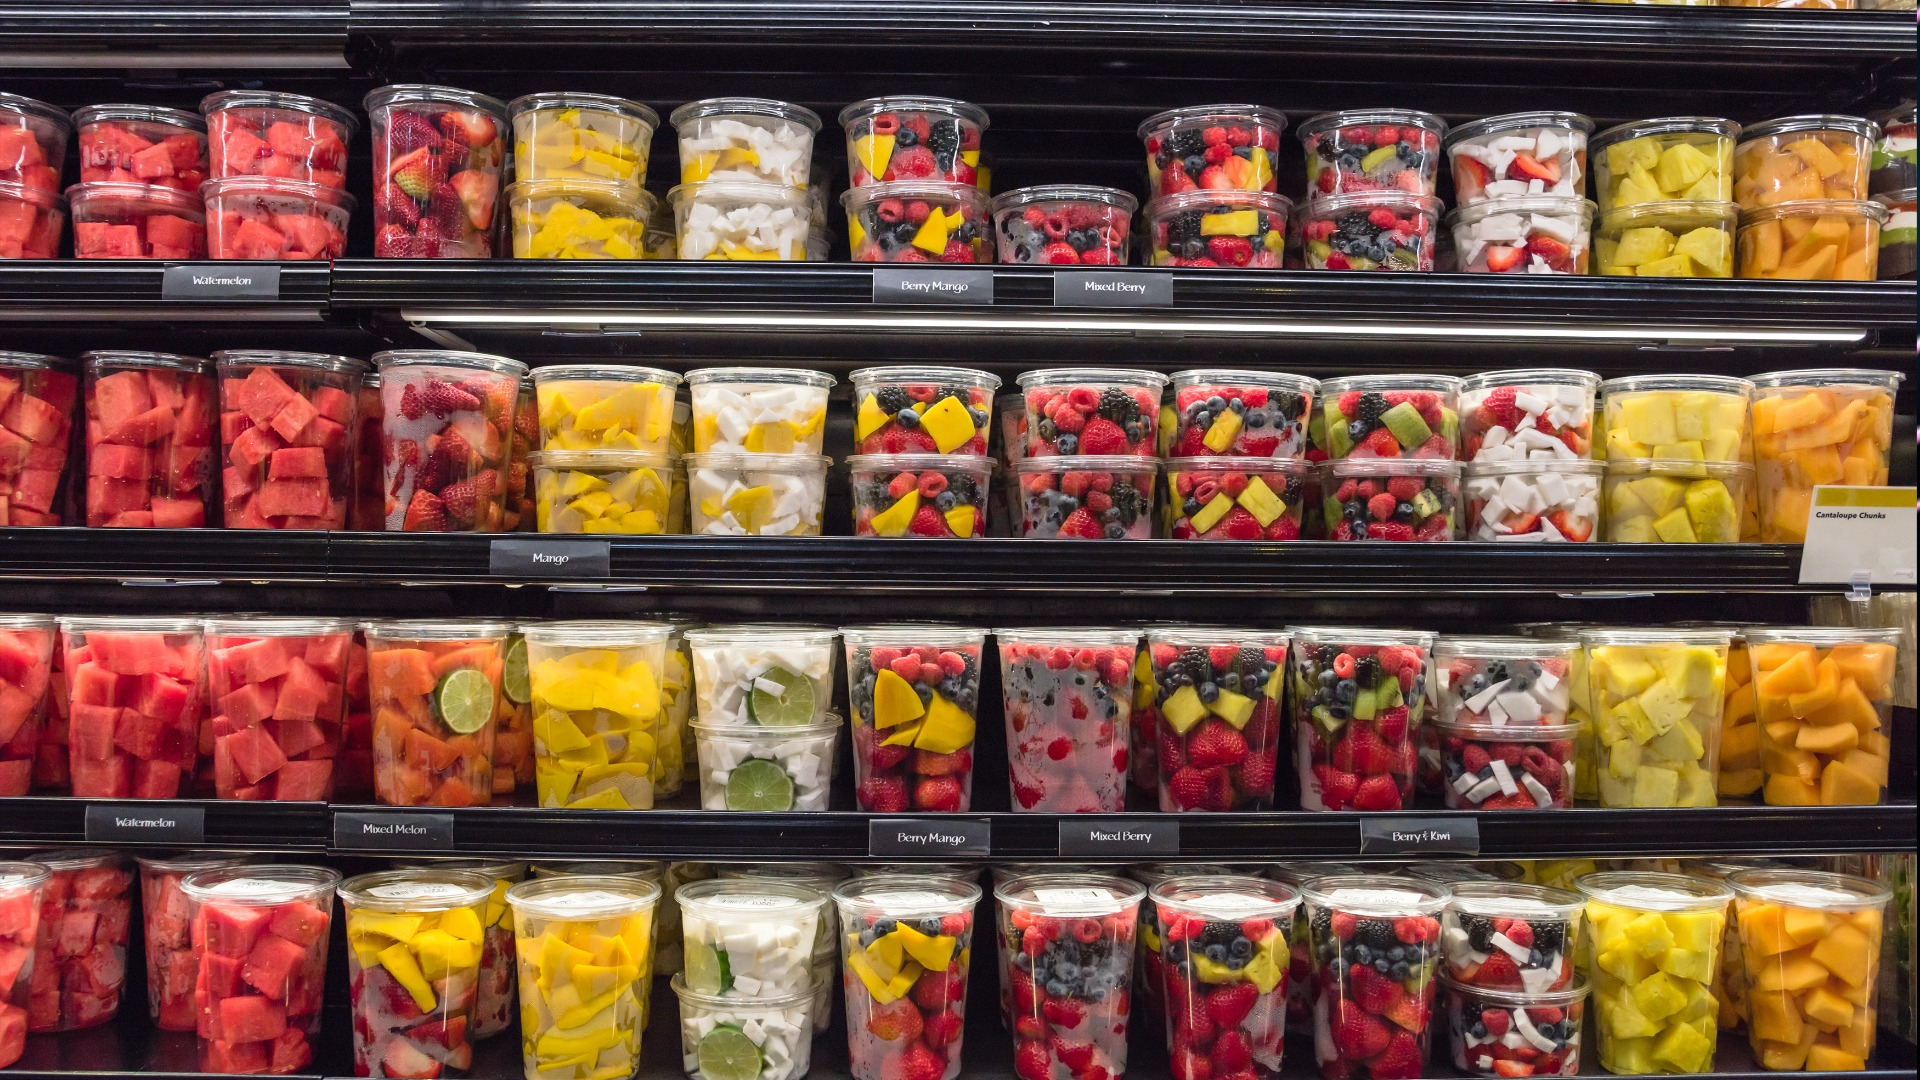 Antimicrobial packaging can extend shelf life and prevent food waste - but more analysis is needed